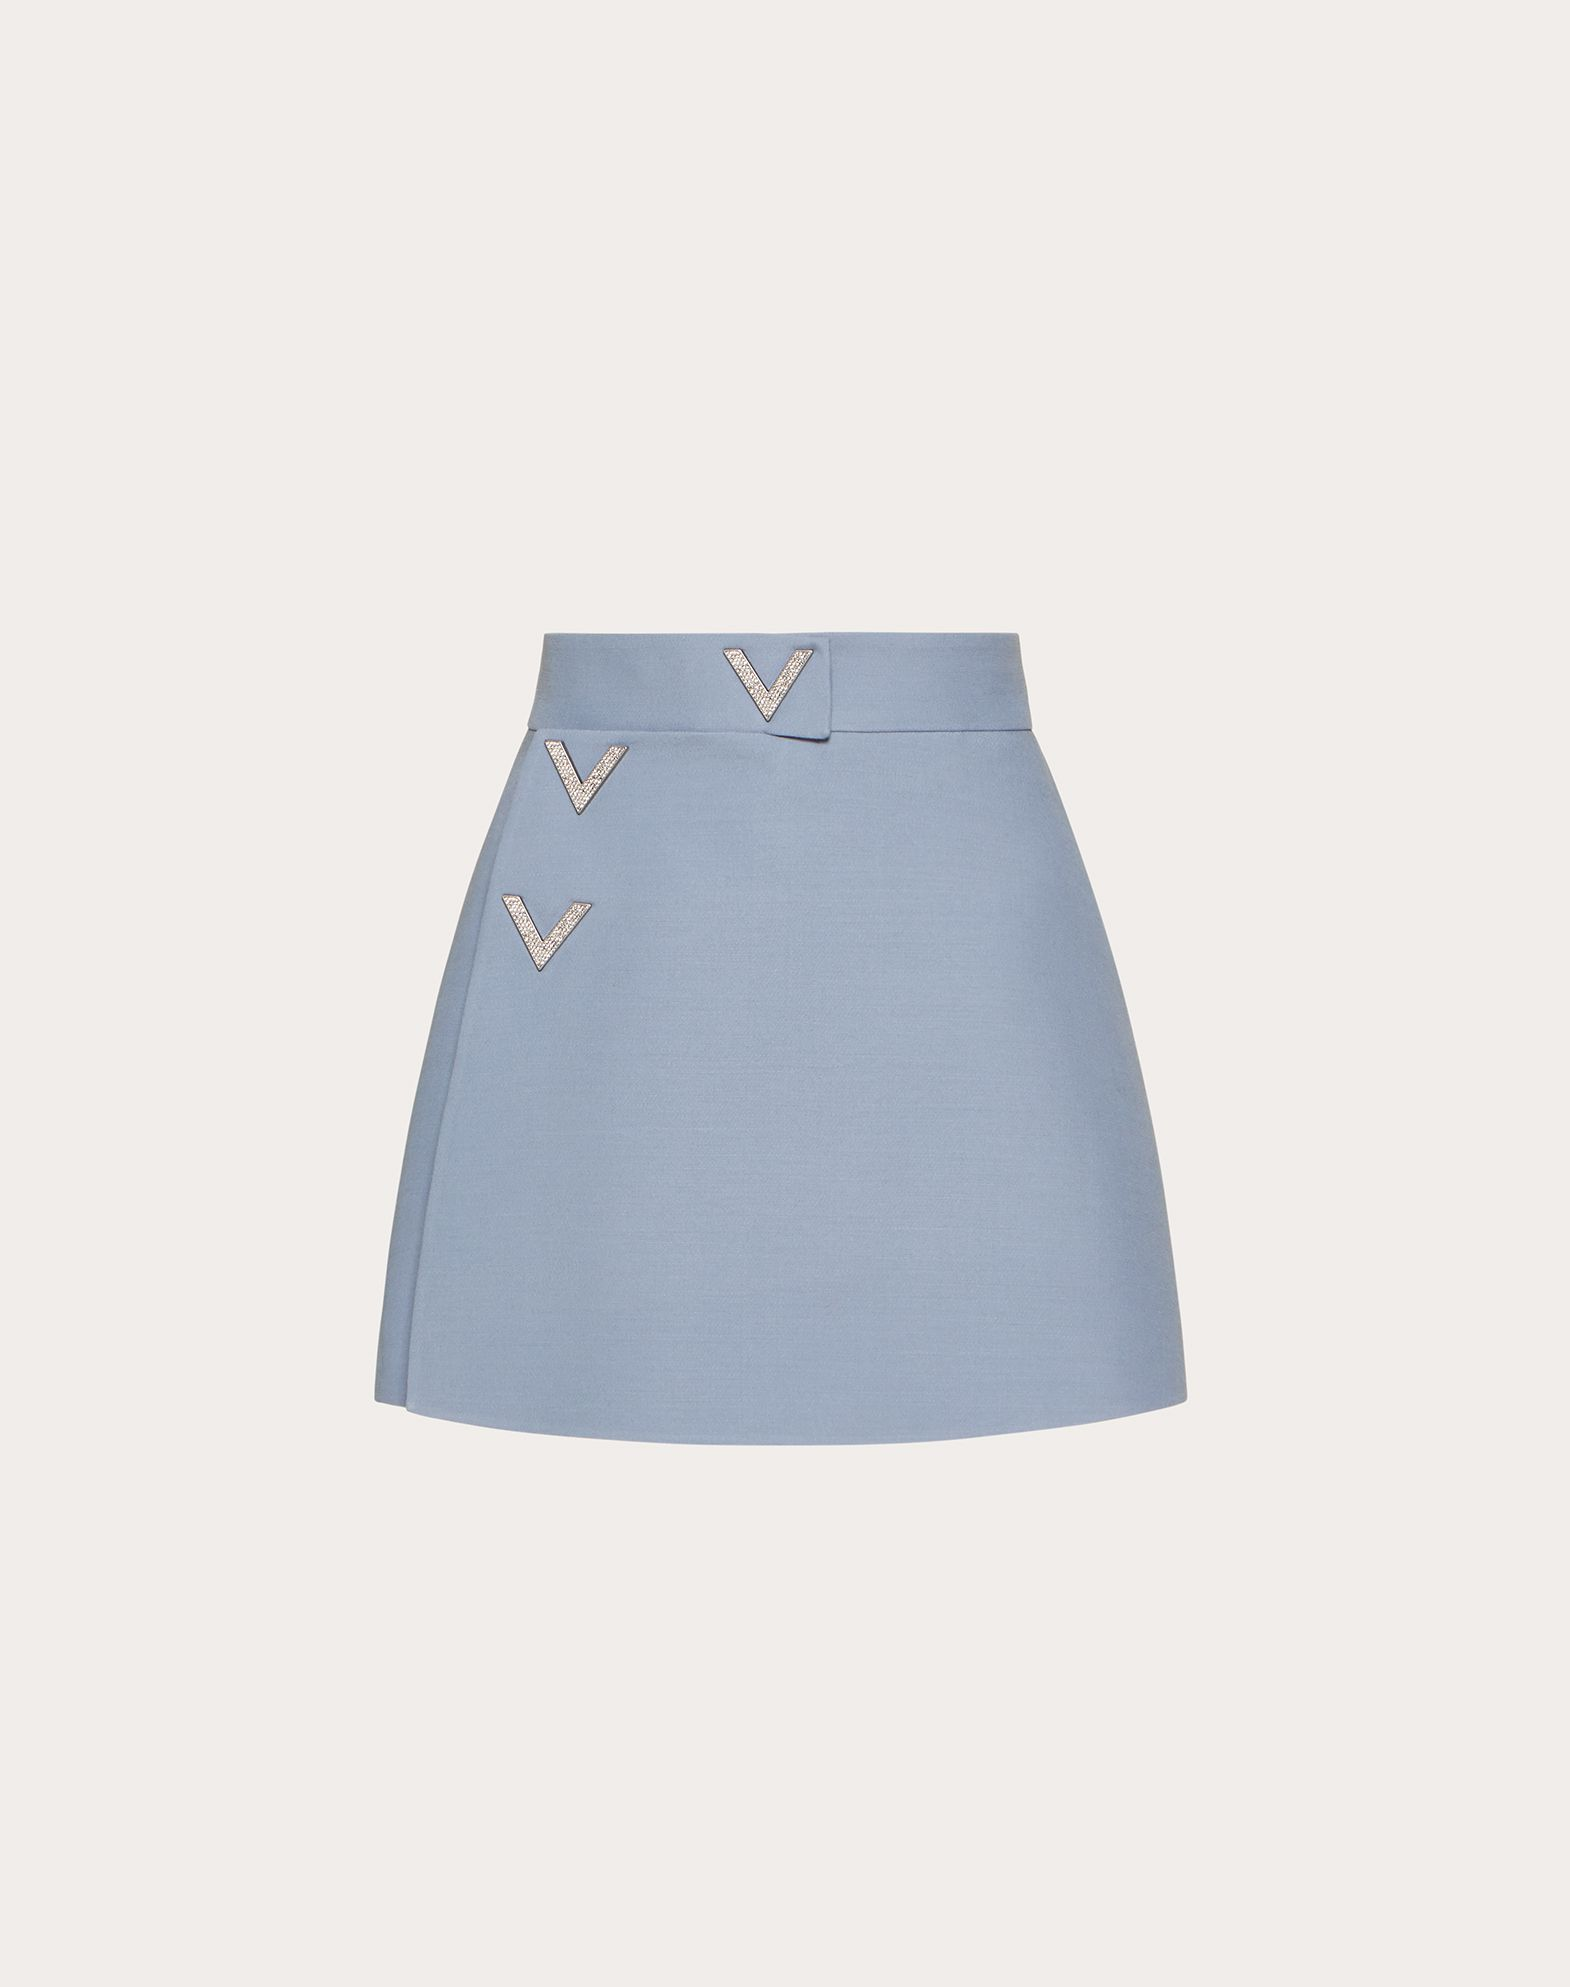 Crepe Couture and V Pavé Culottes